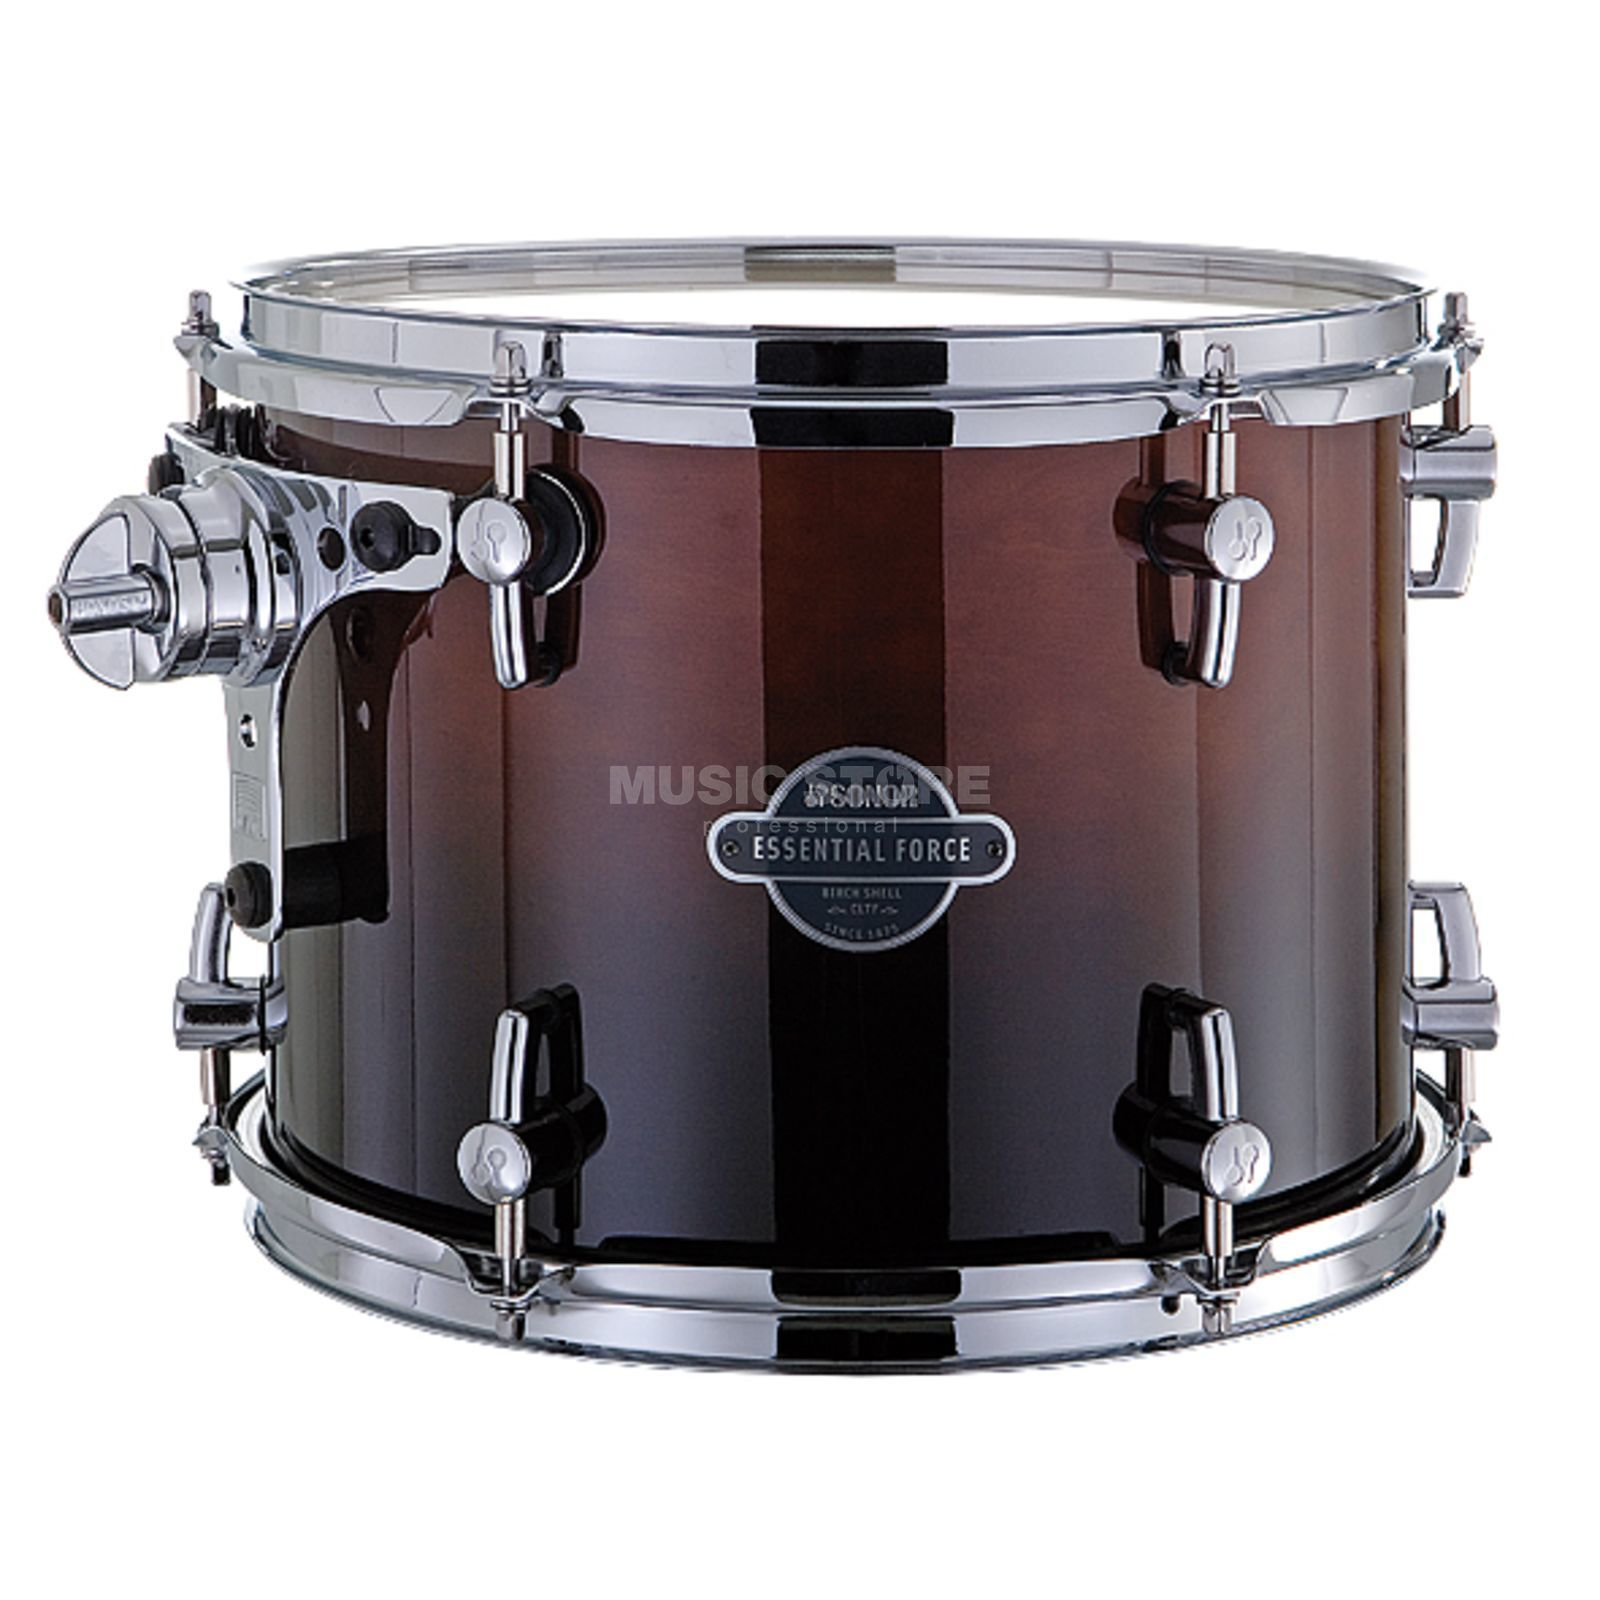 "Sonor Essential Force Tom 13""x10"" Brown Fade Produktbillede"